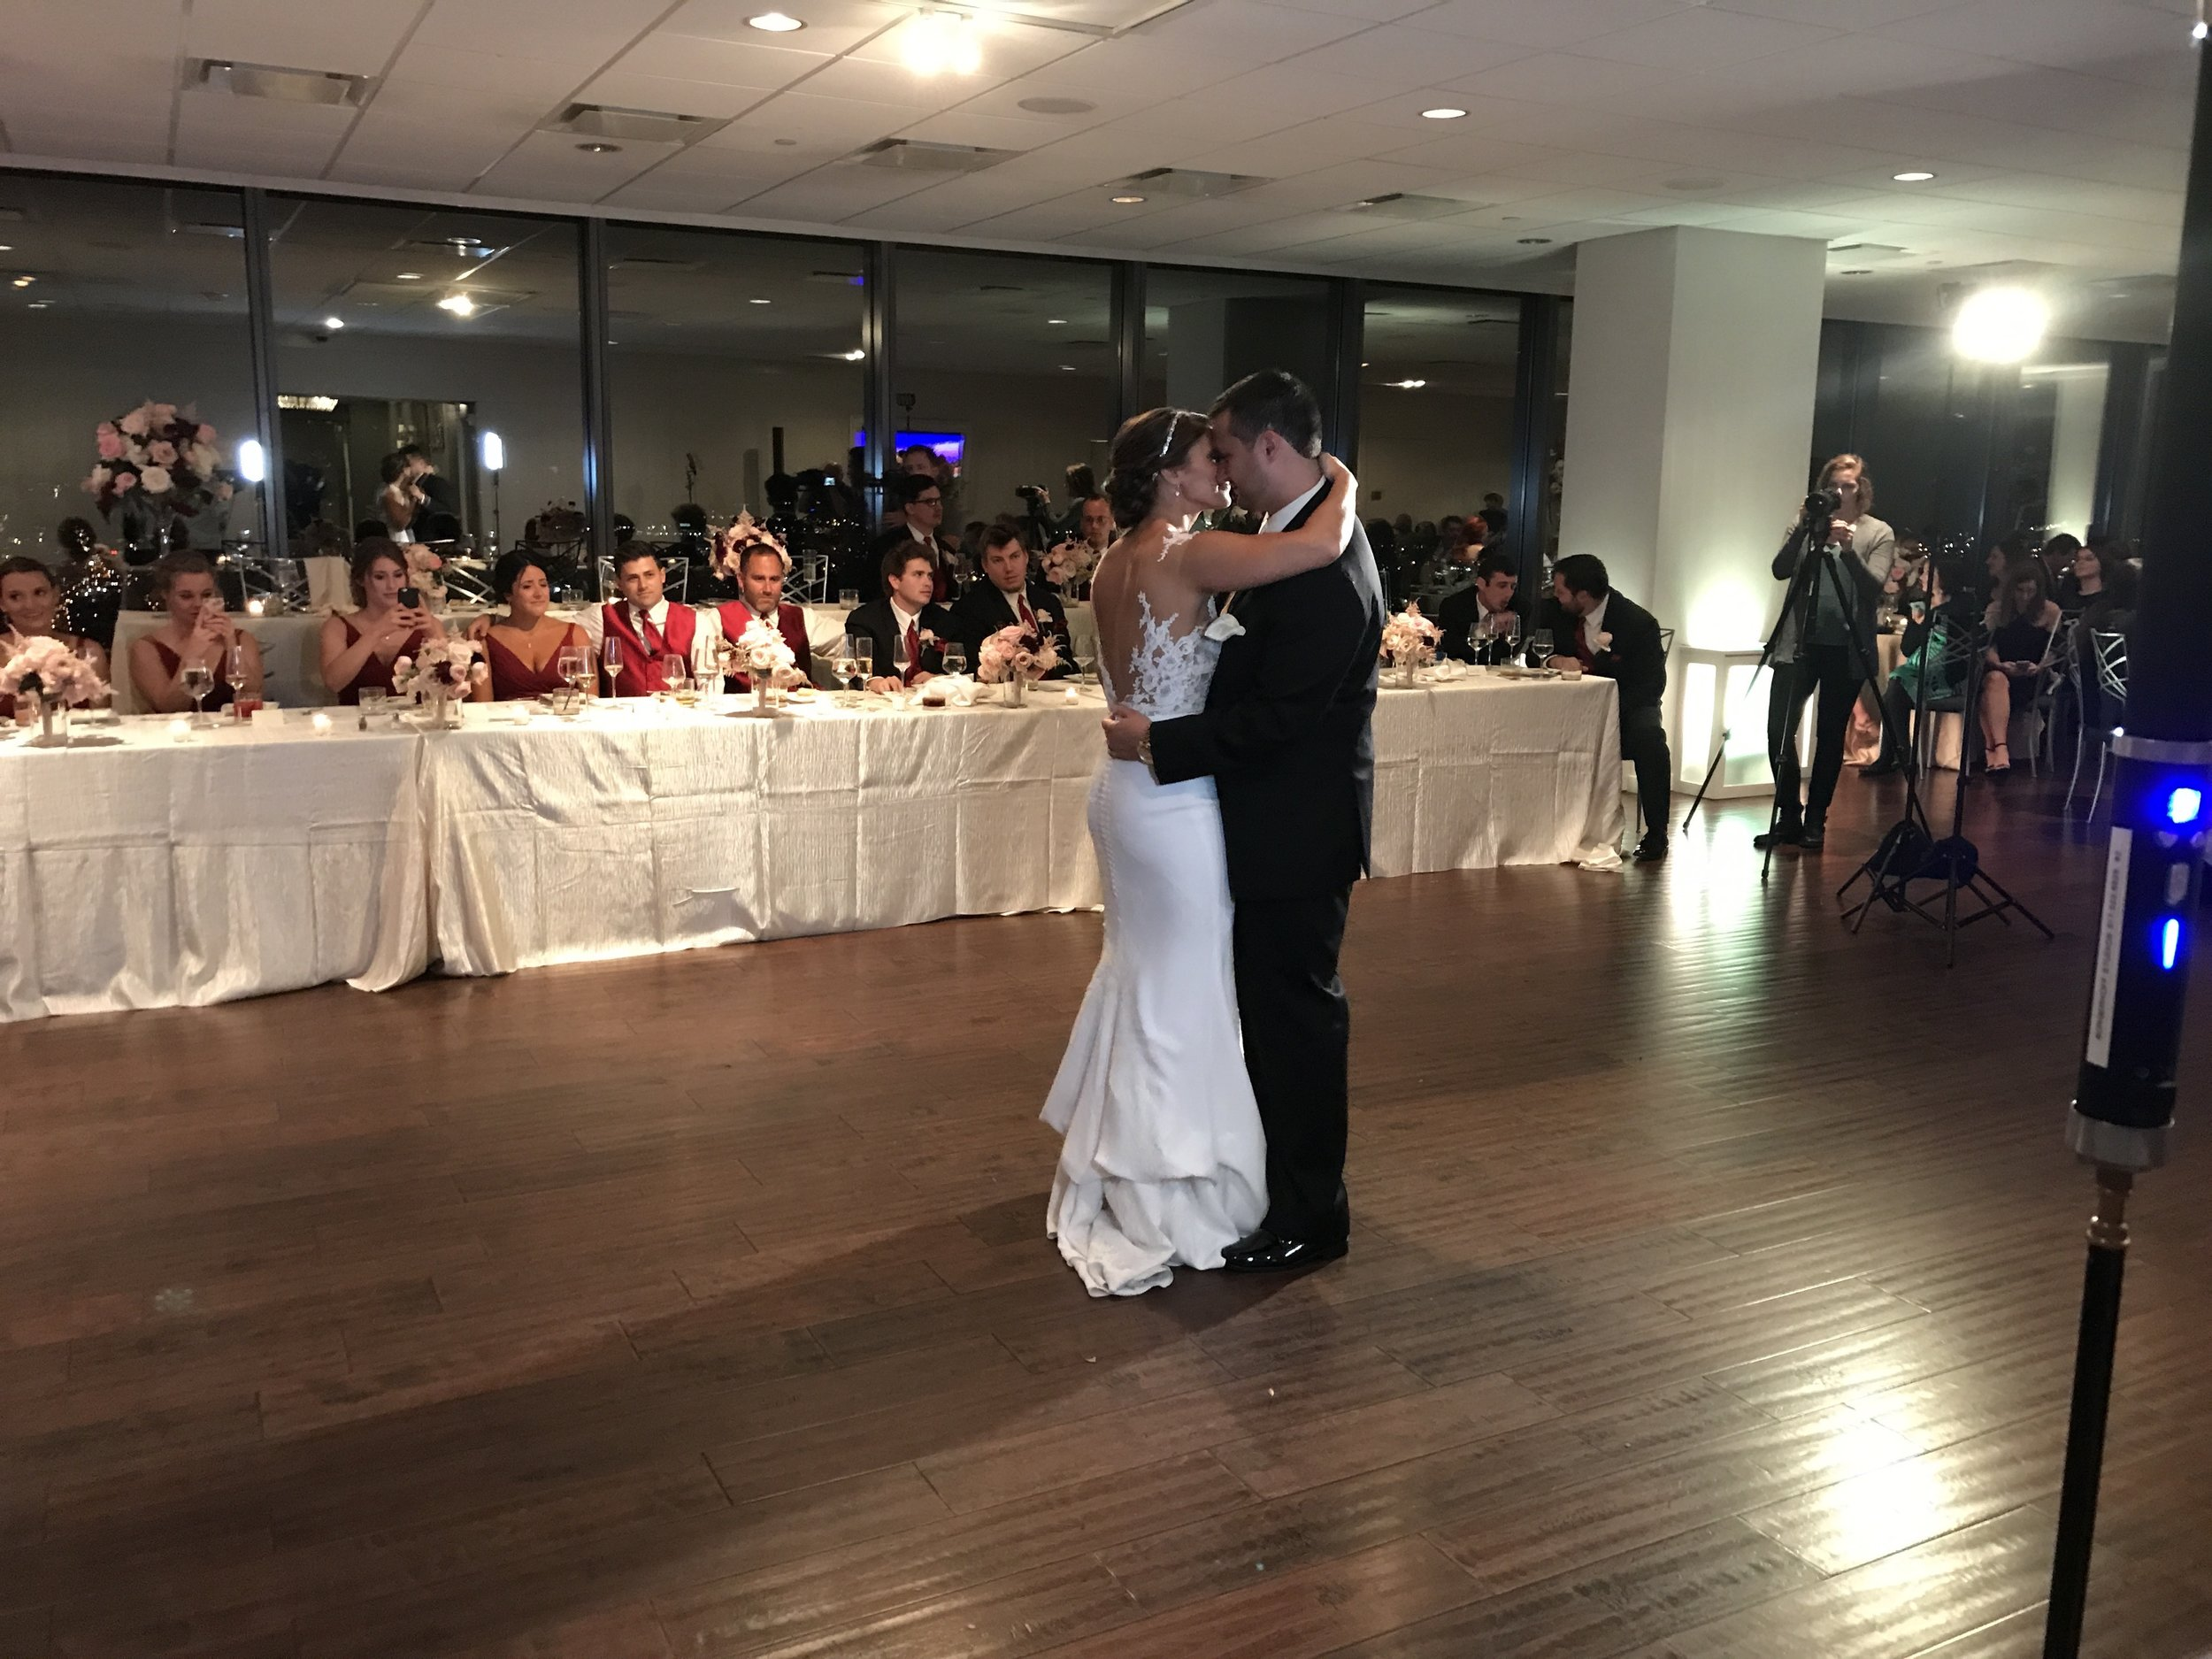 """Katie & Craig's 1st dance """"From the Ground Up"""" (48 floors up to be exact LOL)"""